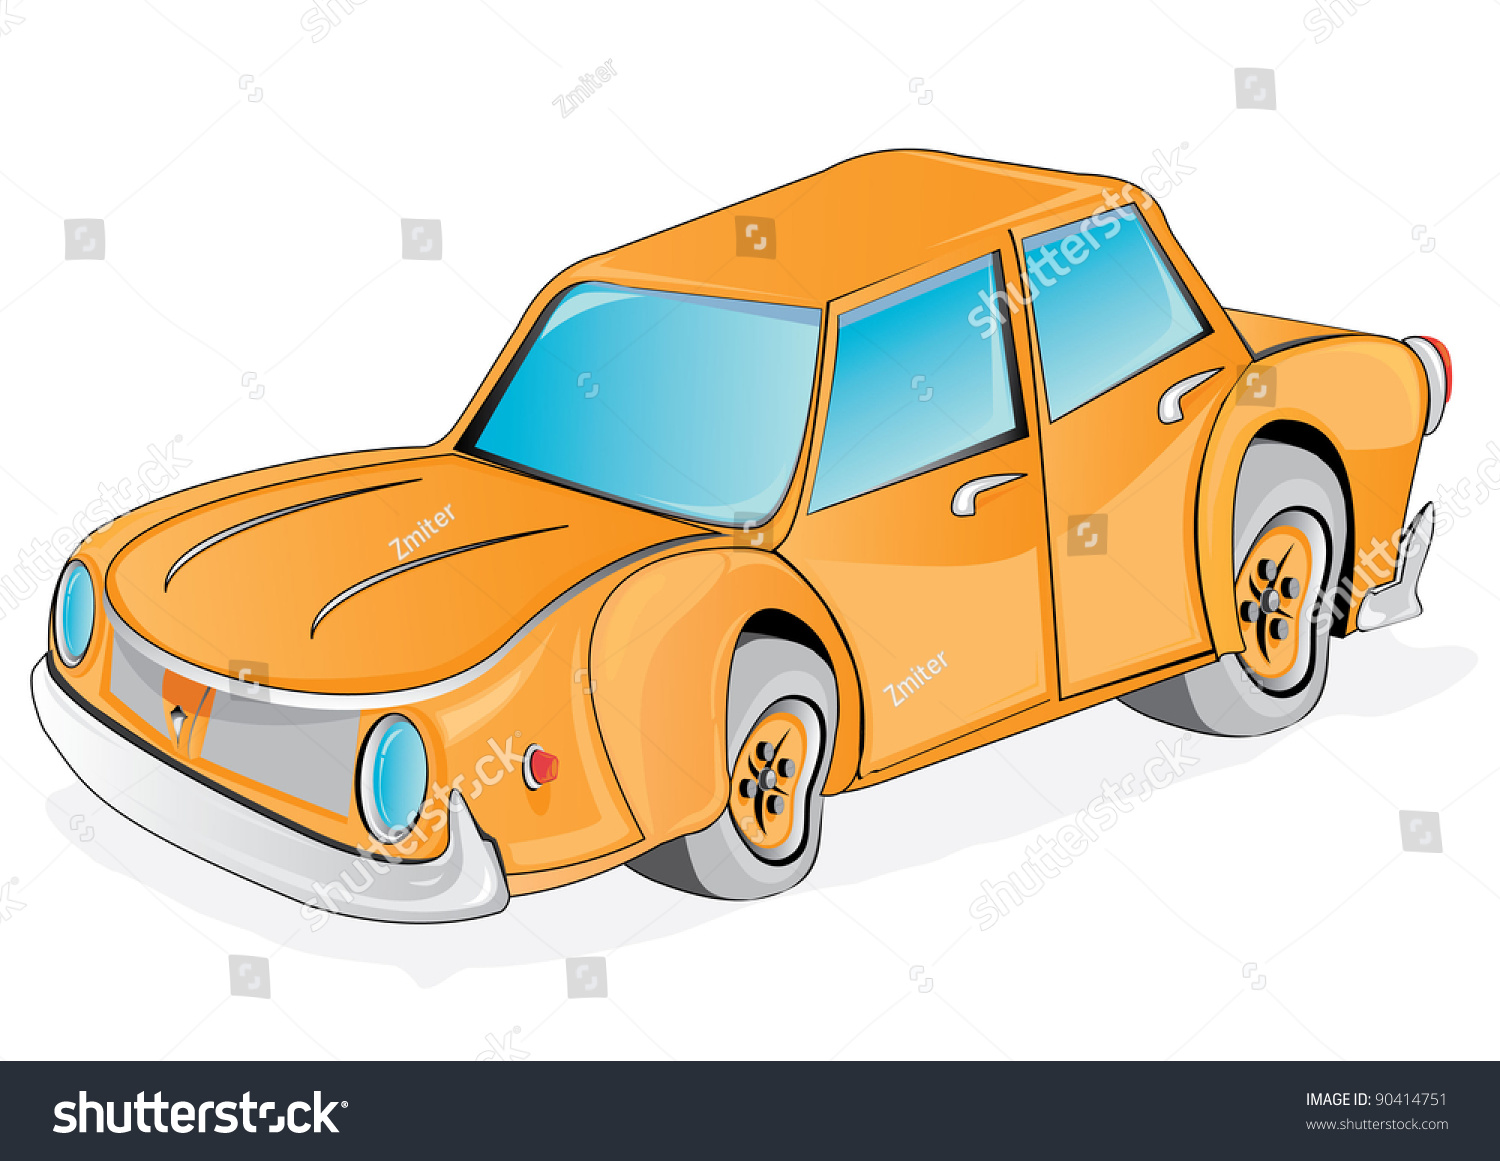 vector retro funny orange cartoon car stock vector 90414751 shutterstock. Black Bedroom Furniture Sets. Home Design Ideas